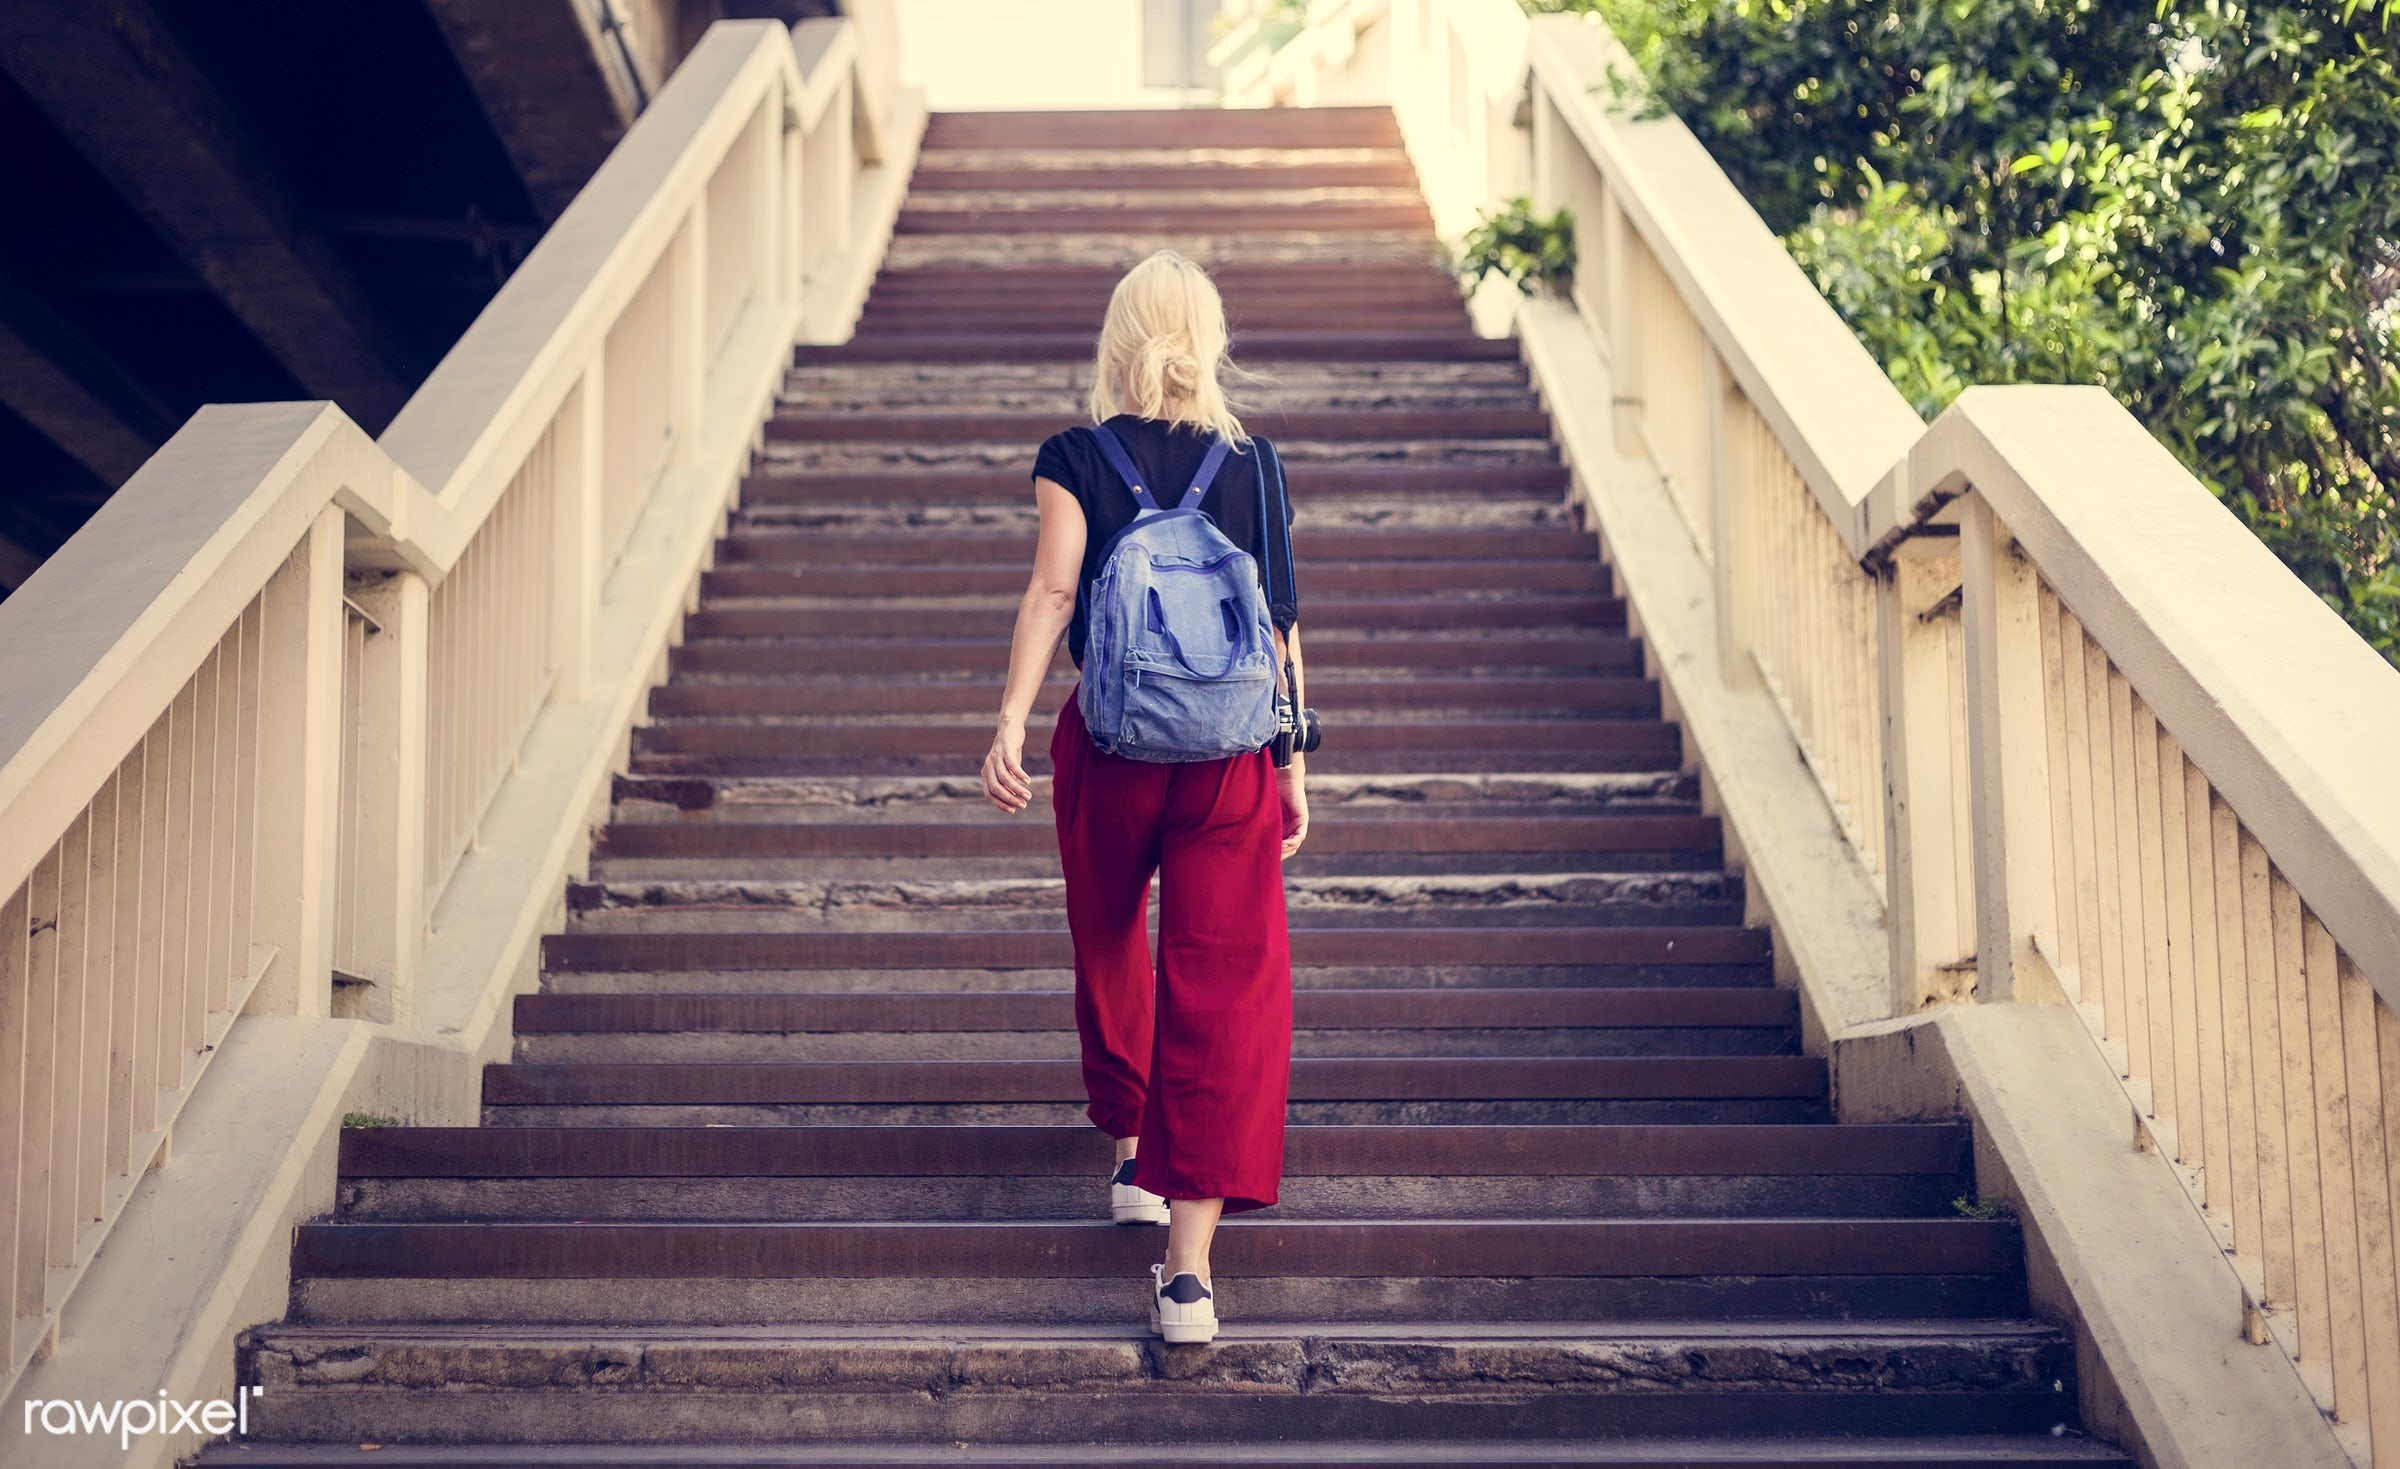 alone, back, backpack, black tee, blonde, camera, explore, female, one, outdoors, people, person, solo, stairs, sweden,...